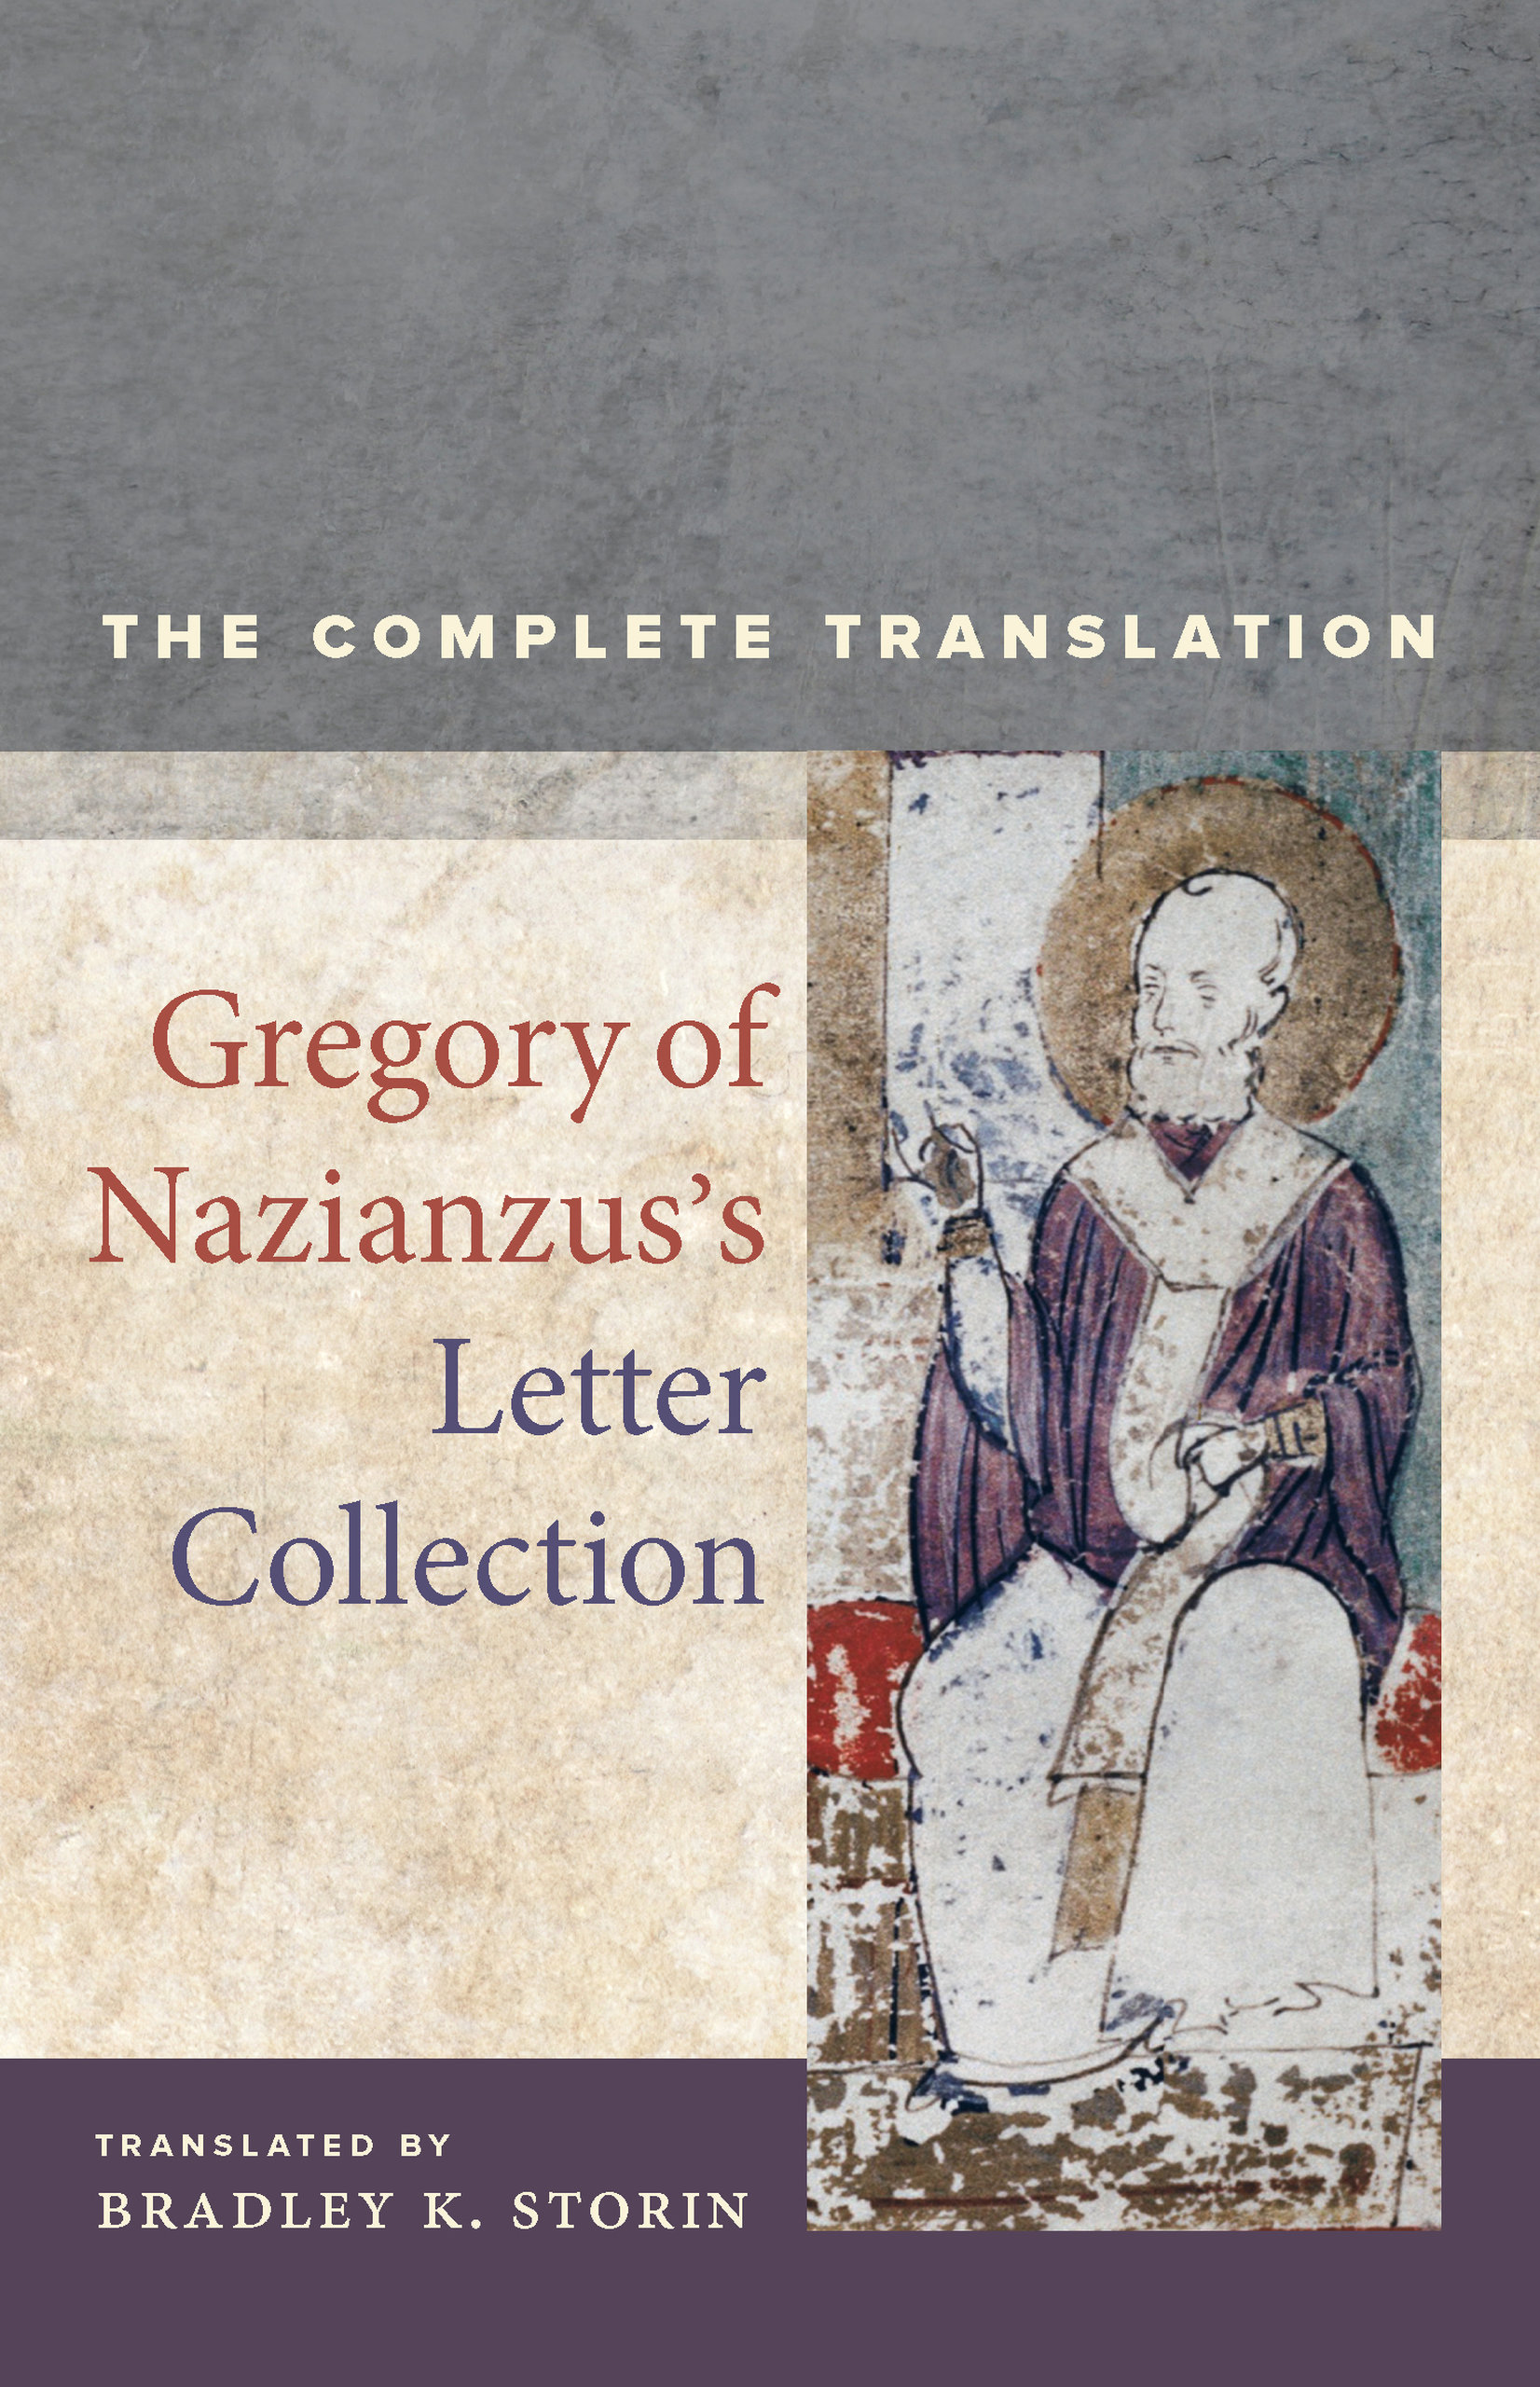 Acquisitions Editor Cover Letter Gregory Of Nazianzus S Letter Collection By Gregory Of Nazianzus